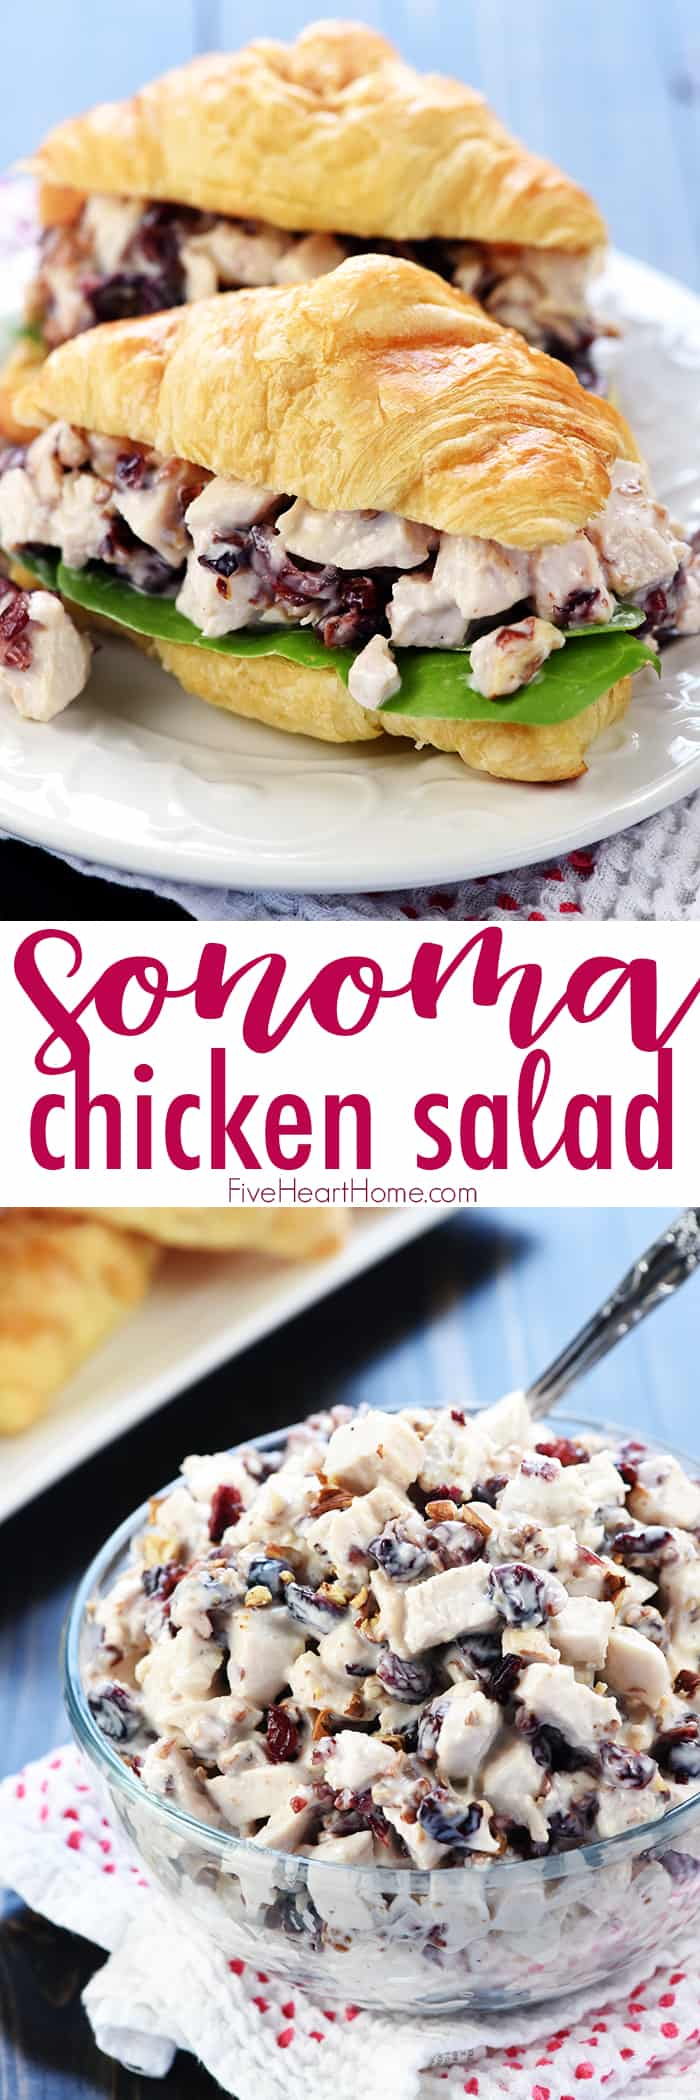 Sonoma Chicken Salad Video Fivehearthome